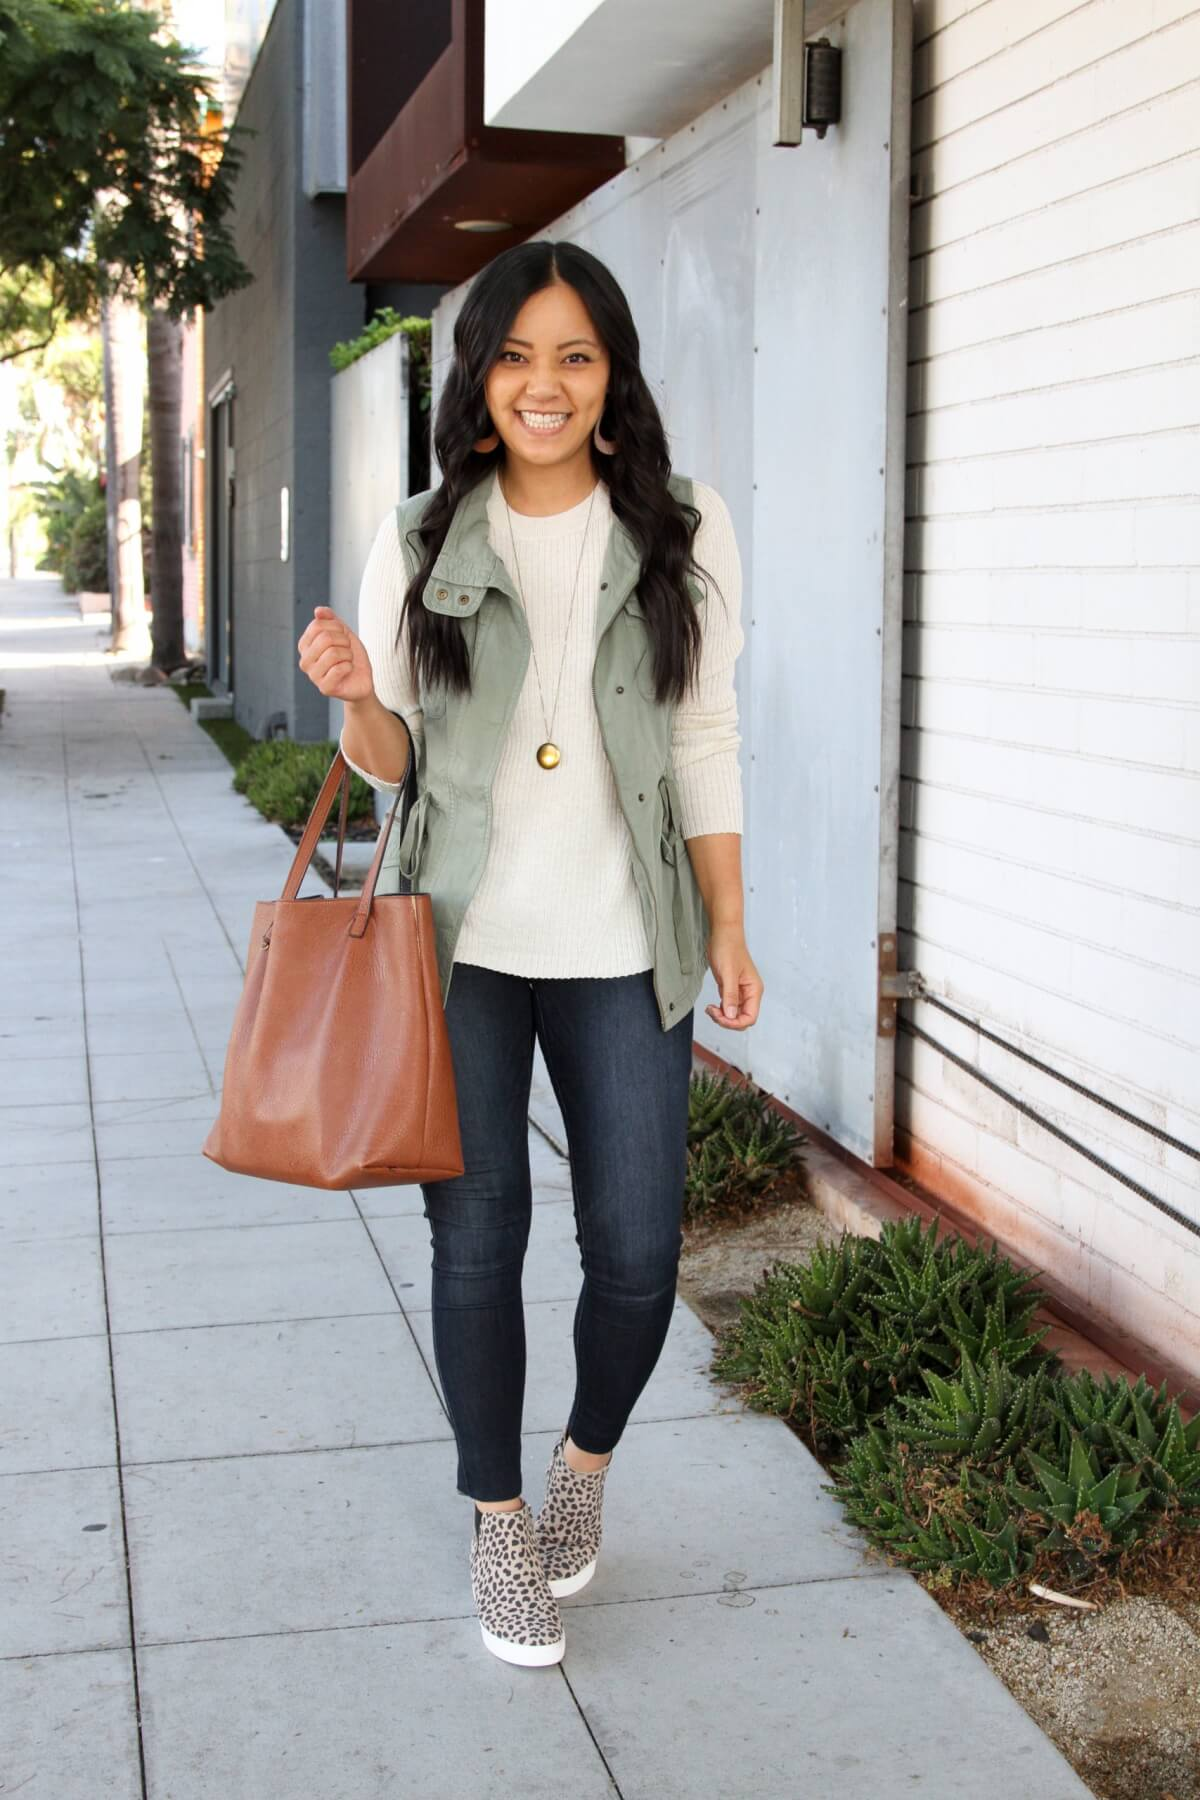 Fall Casual Outfit: cream crewneck sweater + utility vest + skinny jeans + leopard wedge sneakers + cognac tote + long gold circle pendant necklace + tan leather earrings